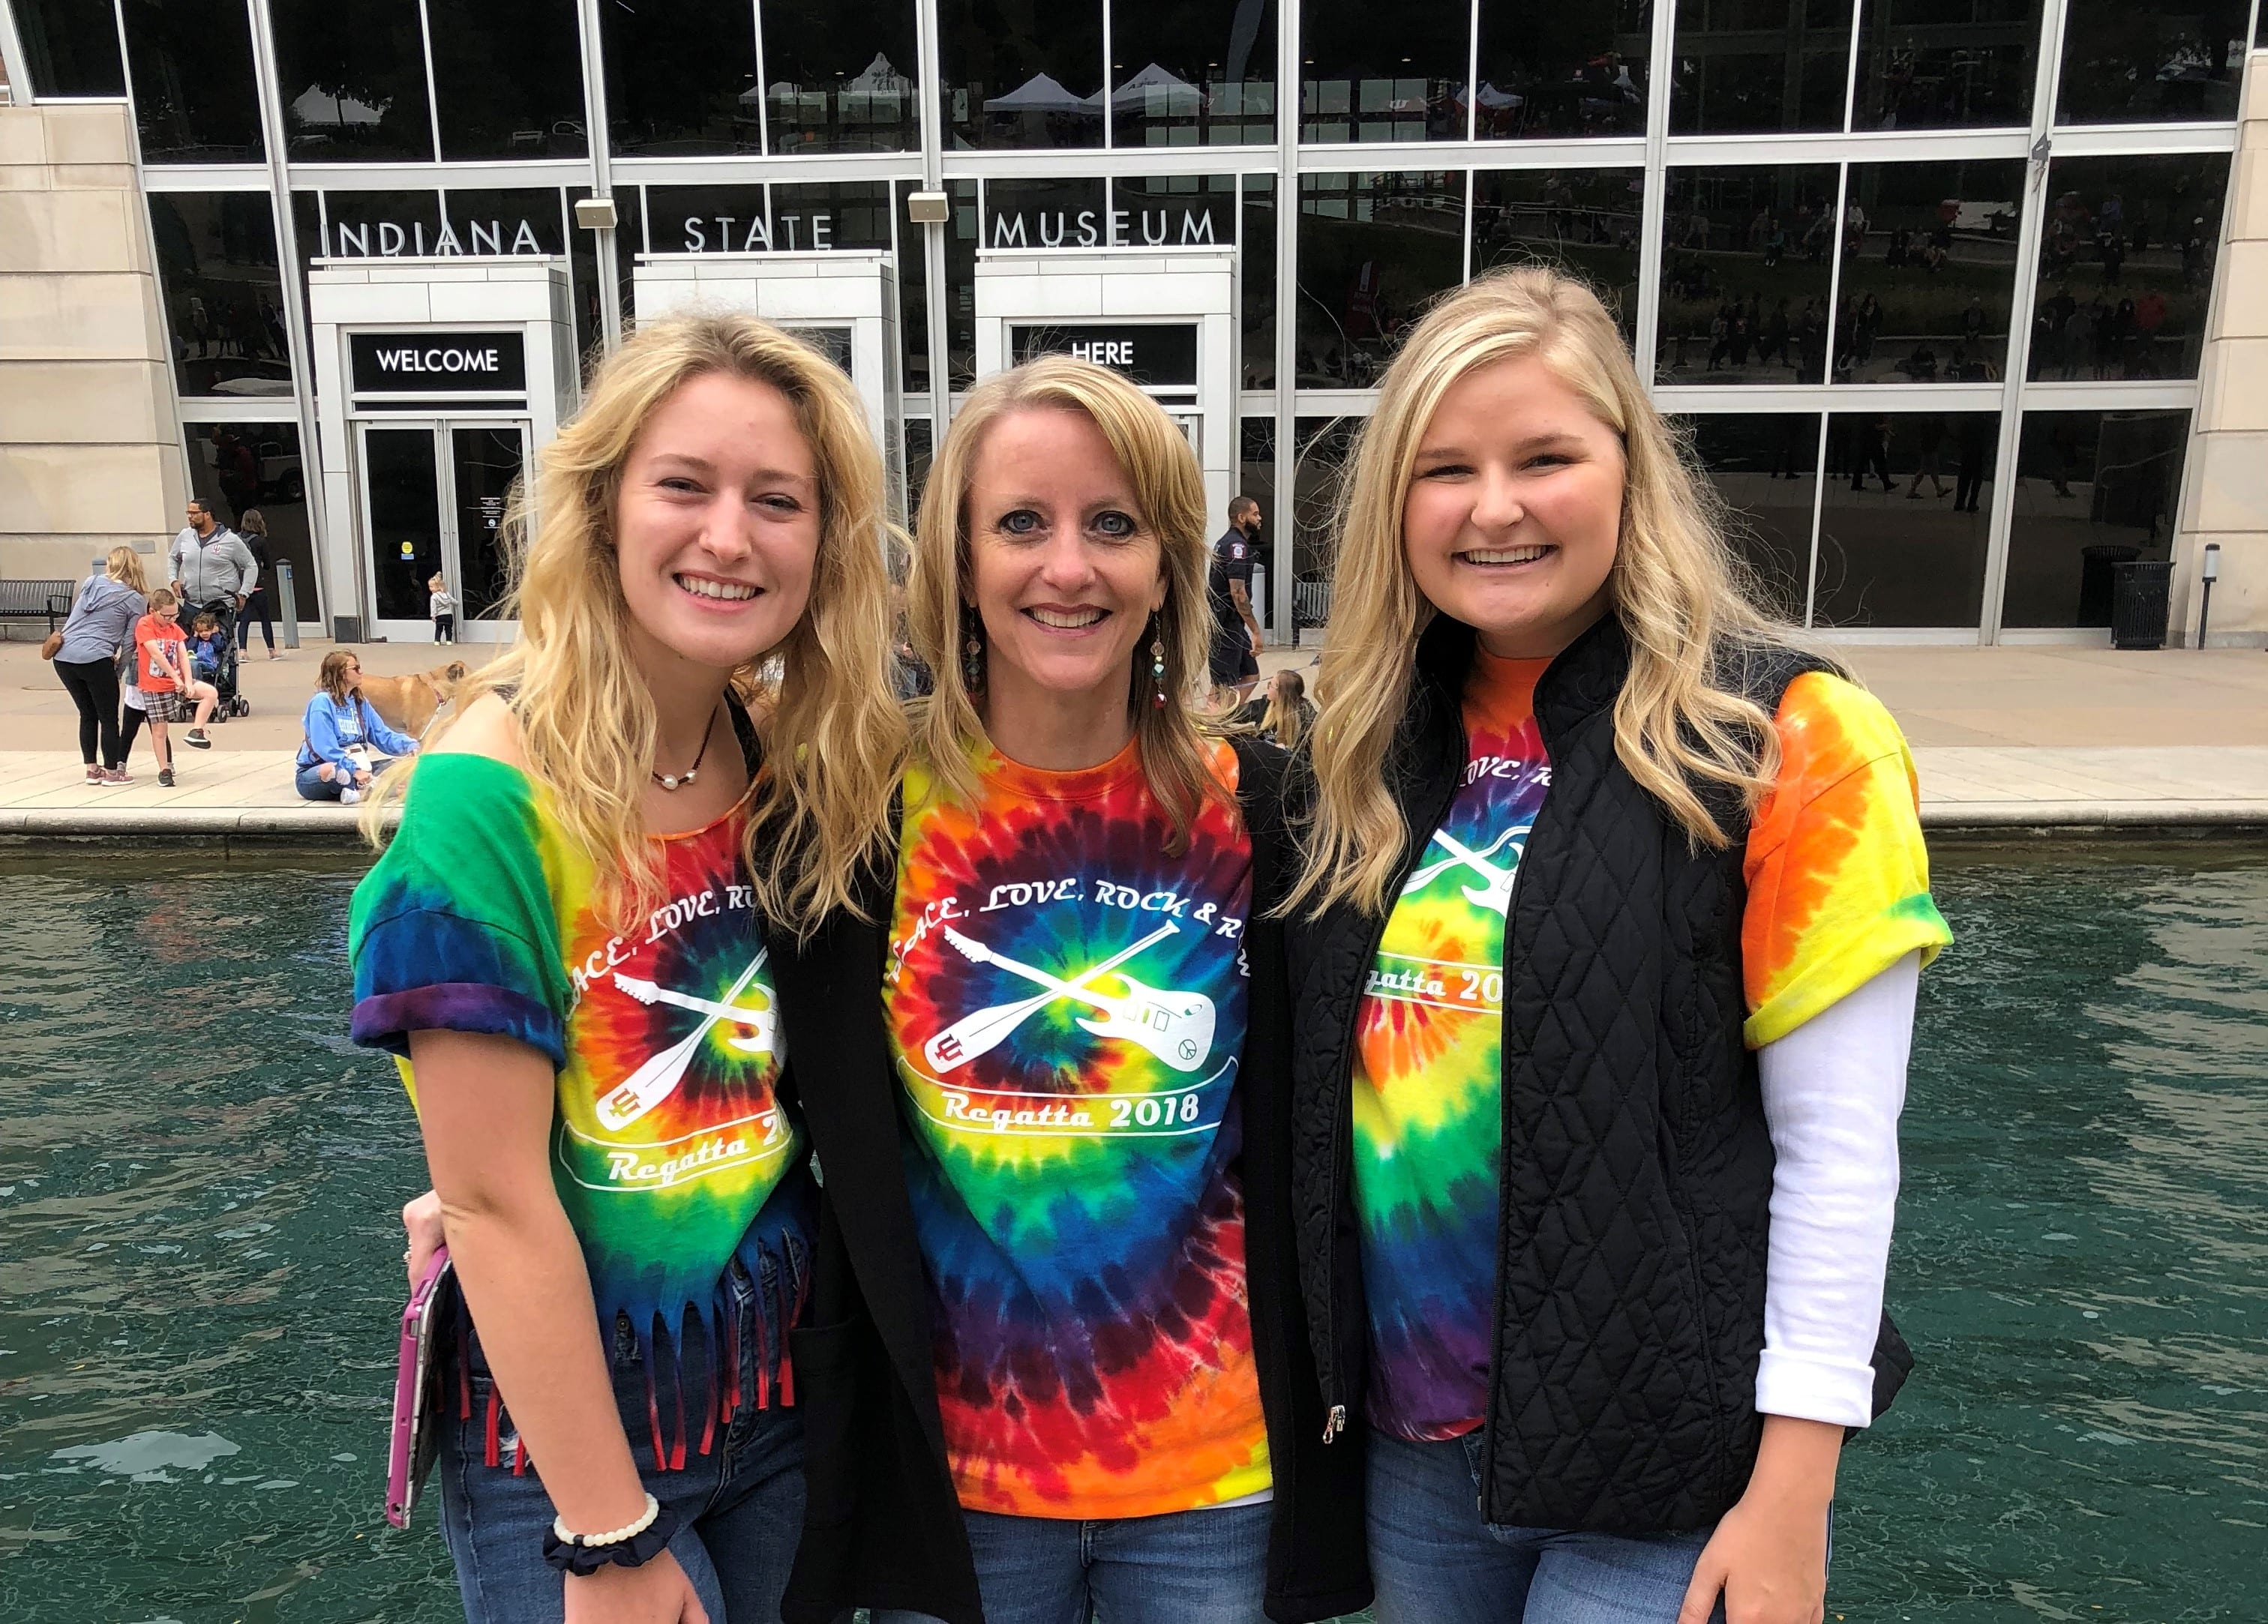 From l-r: Kellie Waring, Pamela Clark, and Justine Oppelt support the Water Lillies team at the 10th annual IUPUI Regatta